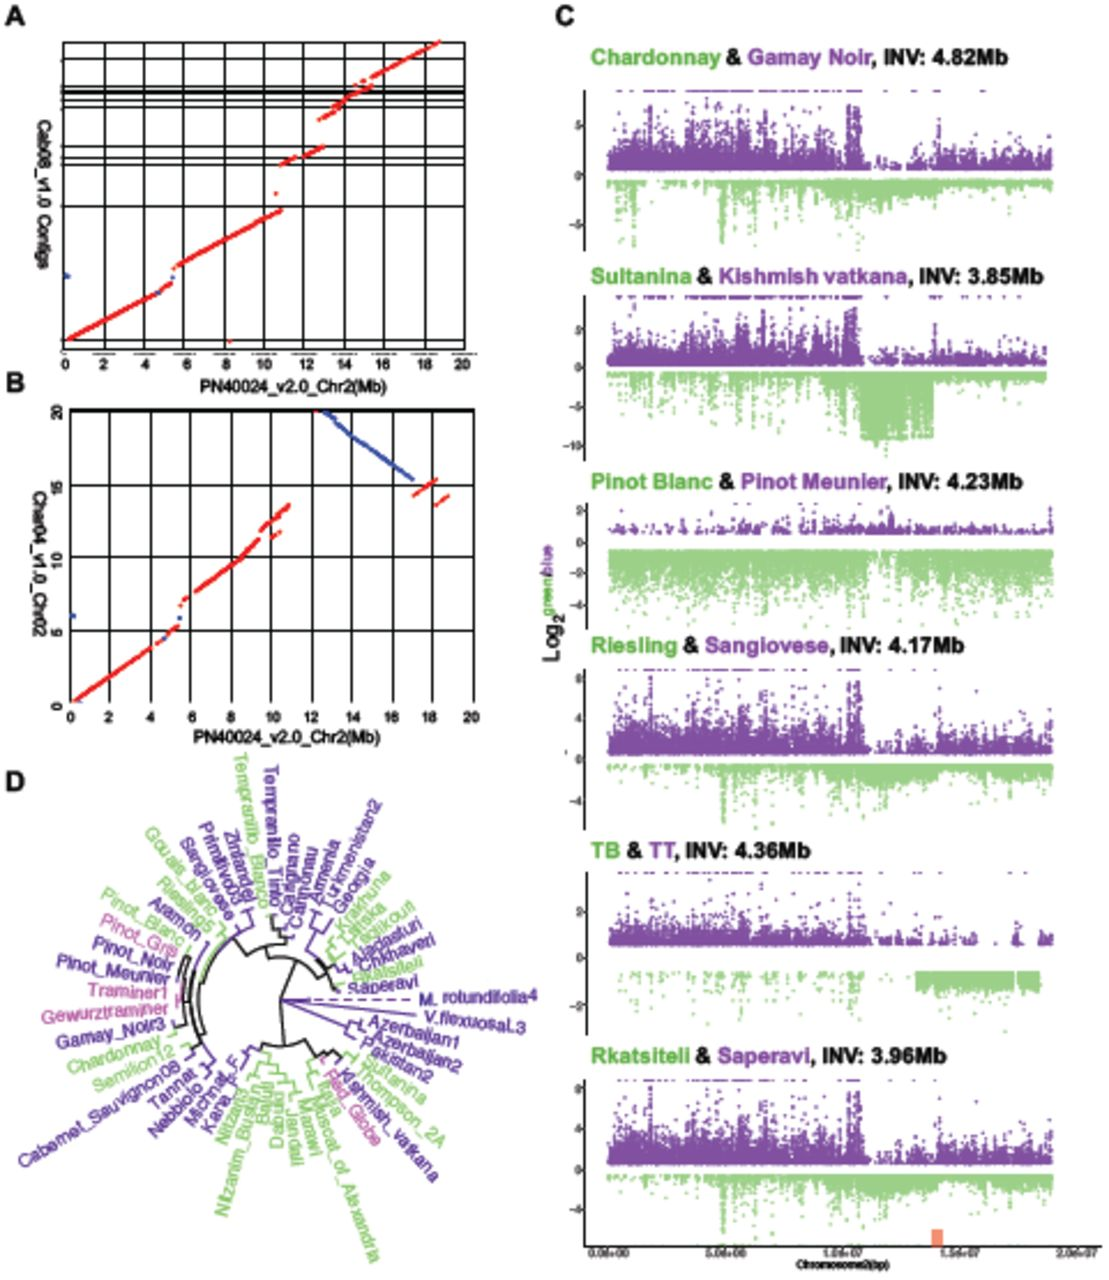 Structural variants, clonal propagation, and genome evolution in